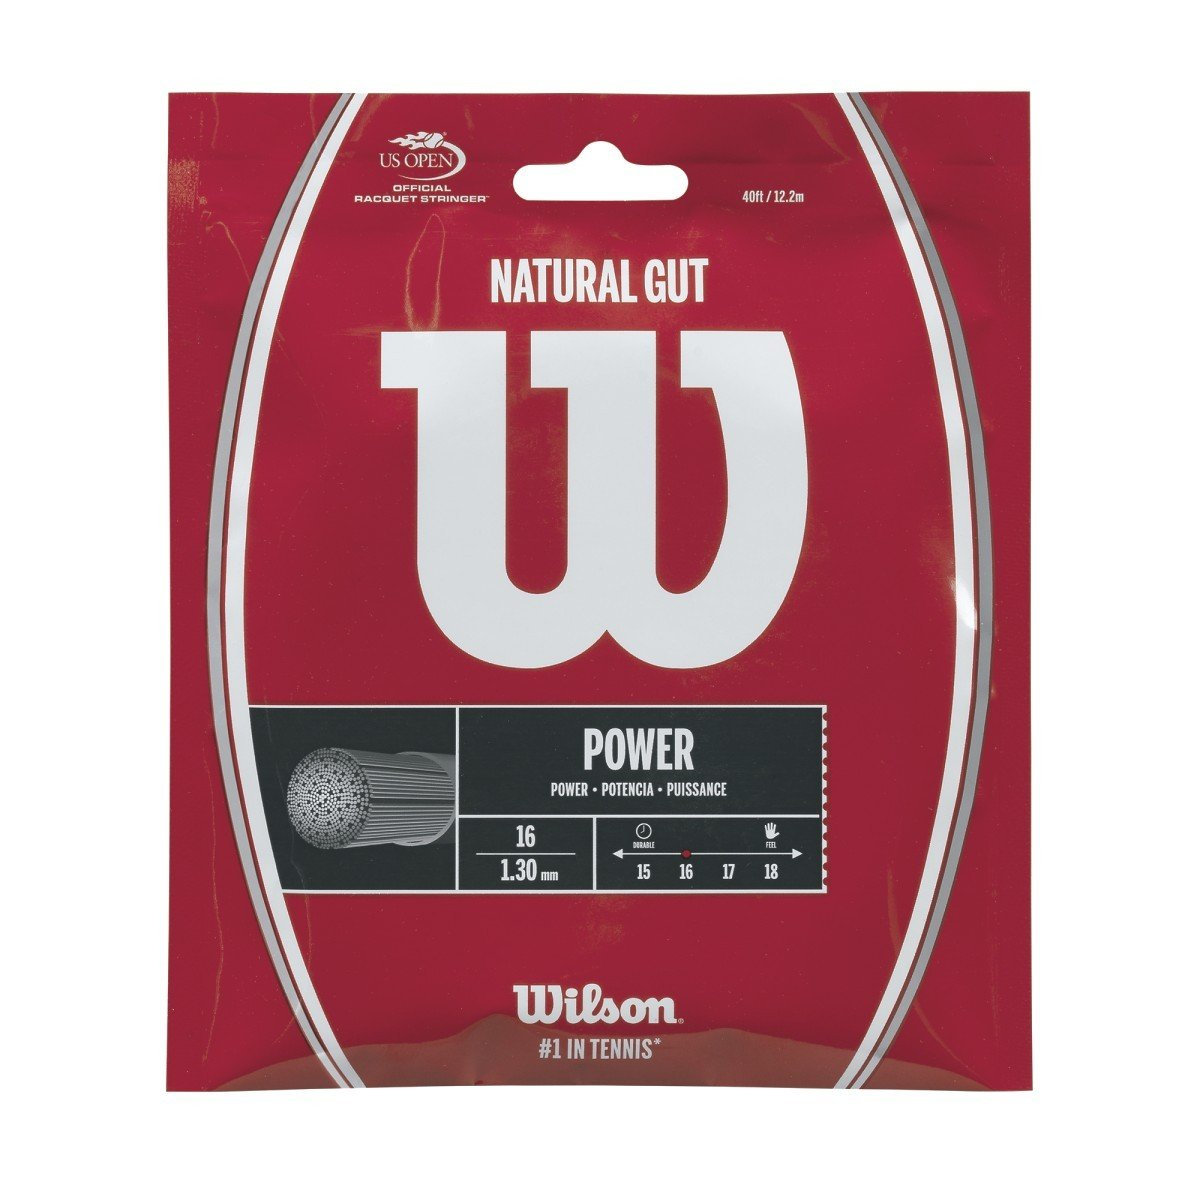 Wilson Natural Gut Power Tennis String - 16 Gauge (Best String for Control and Comfort)